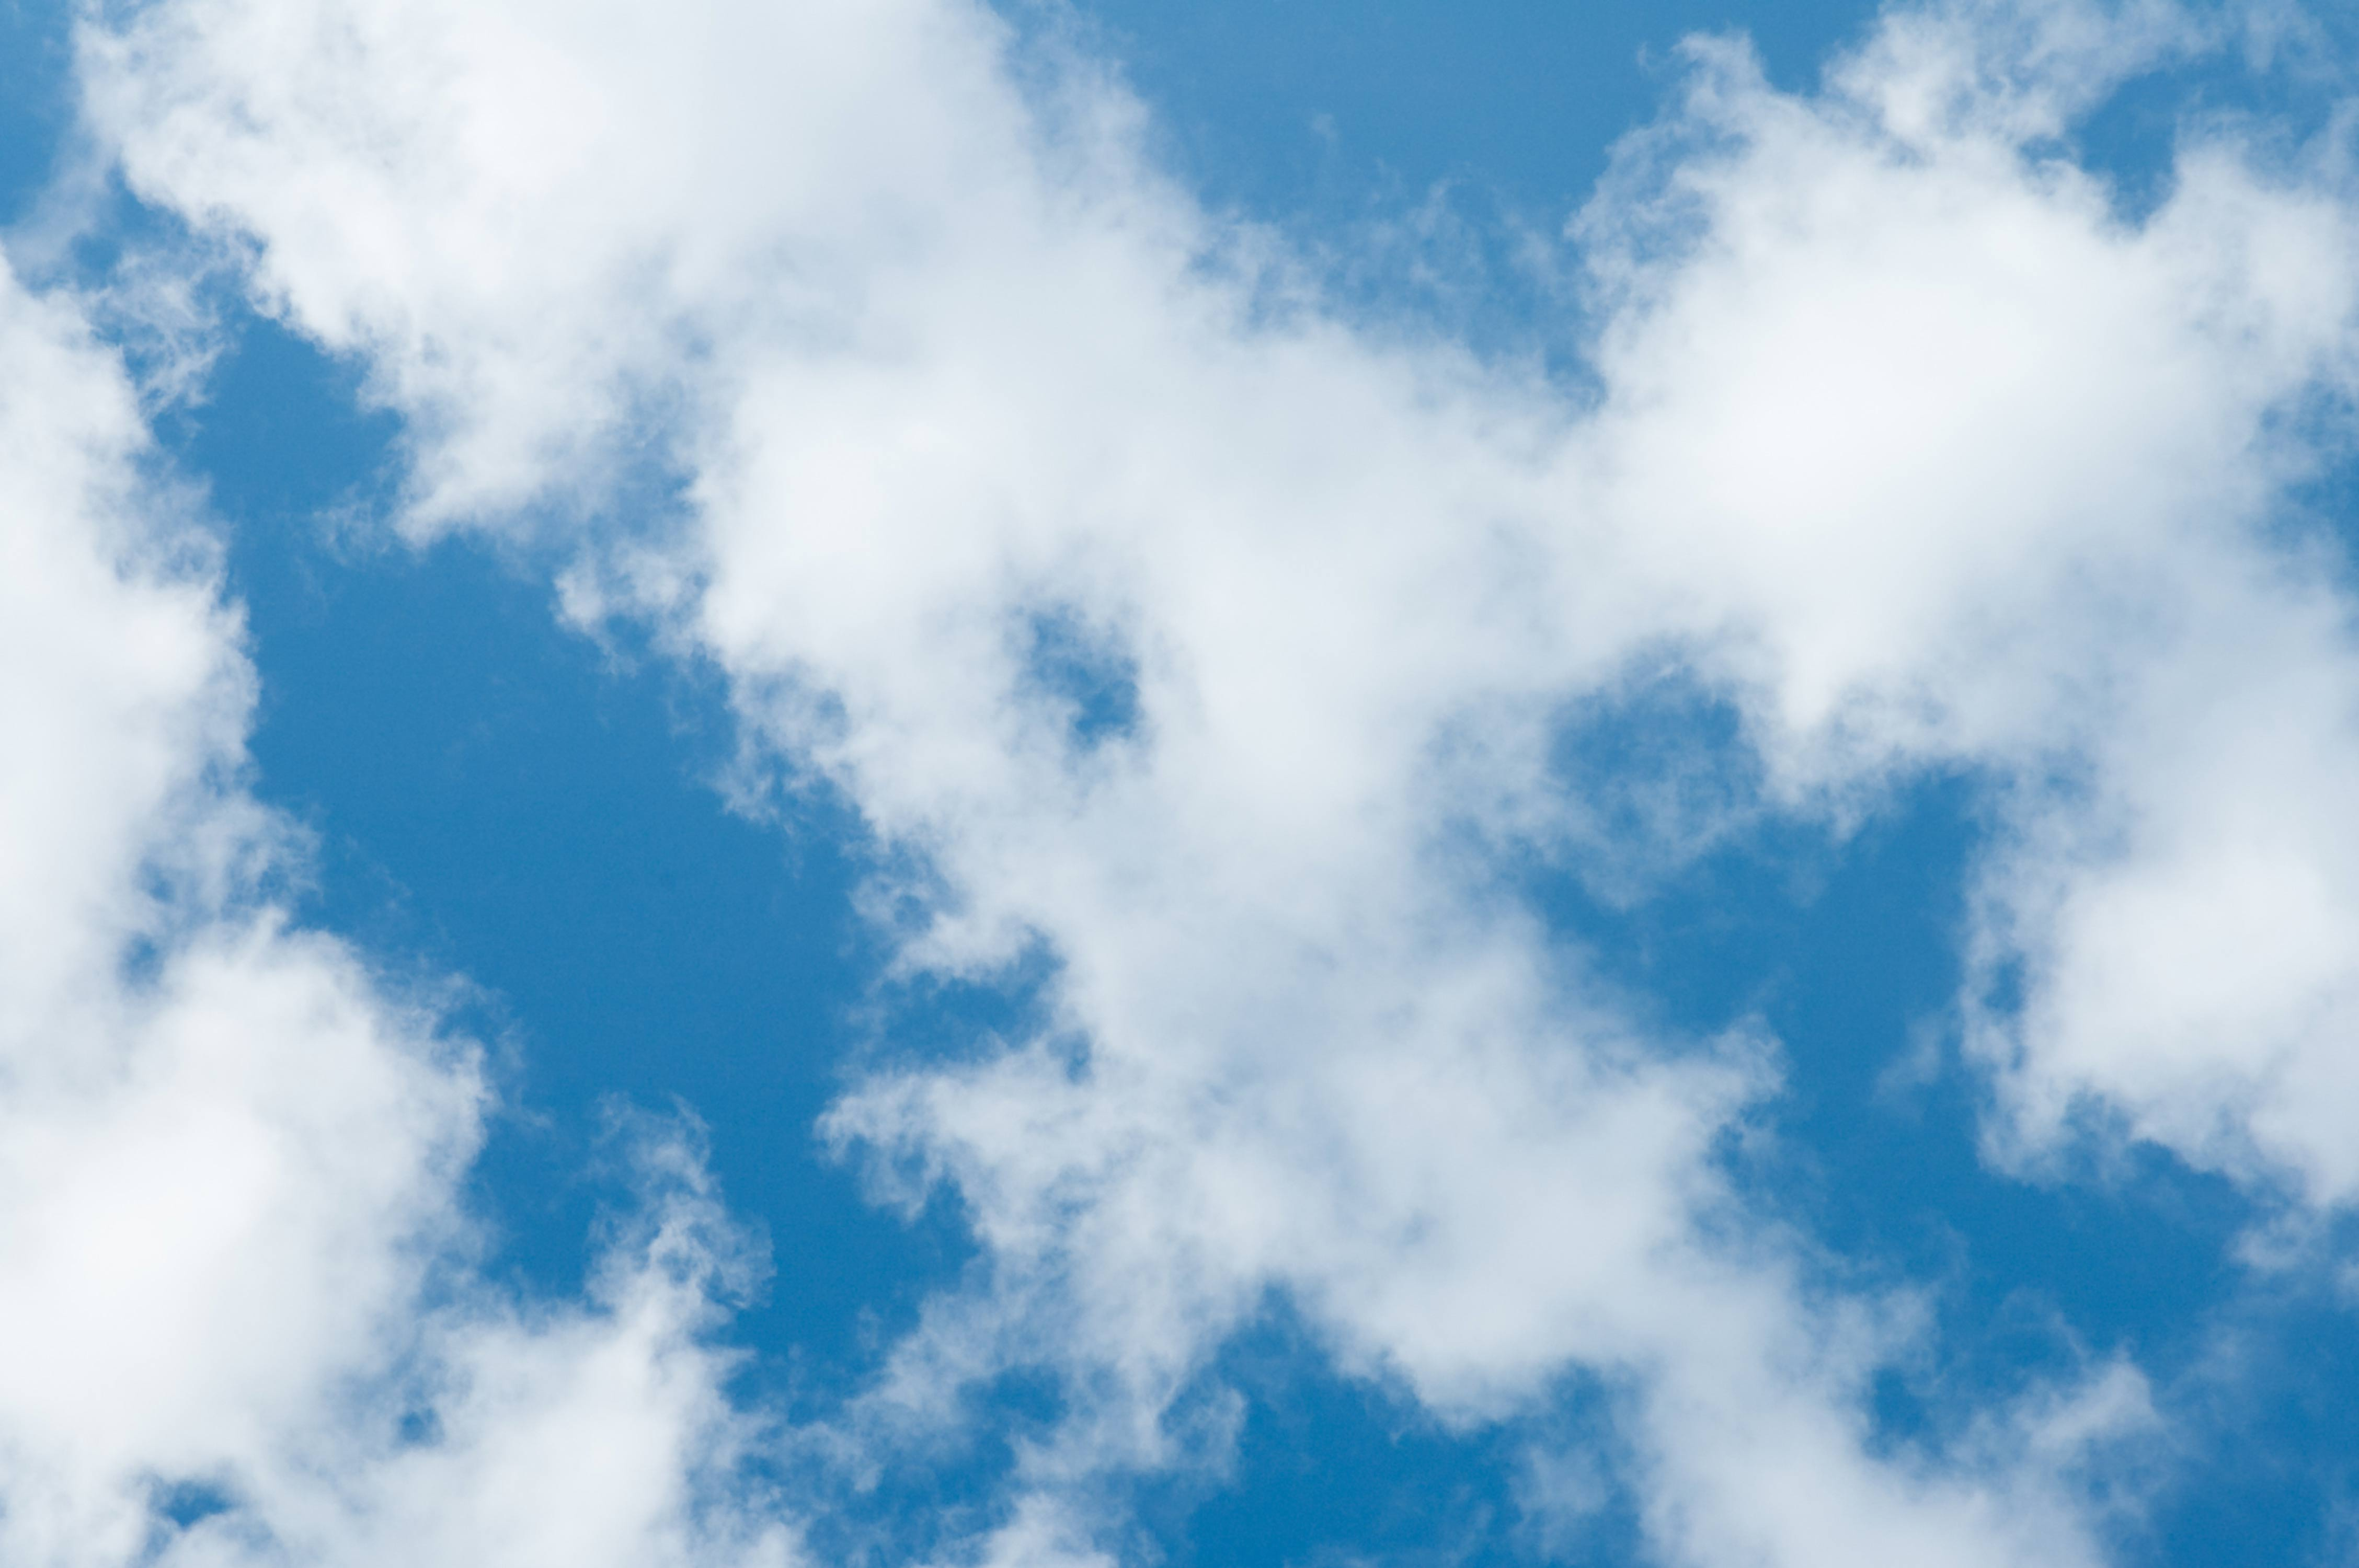 Blue Sky and Clouds Pattern